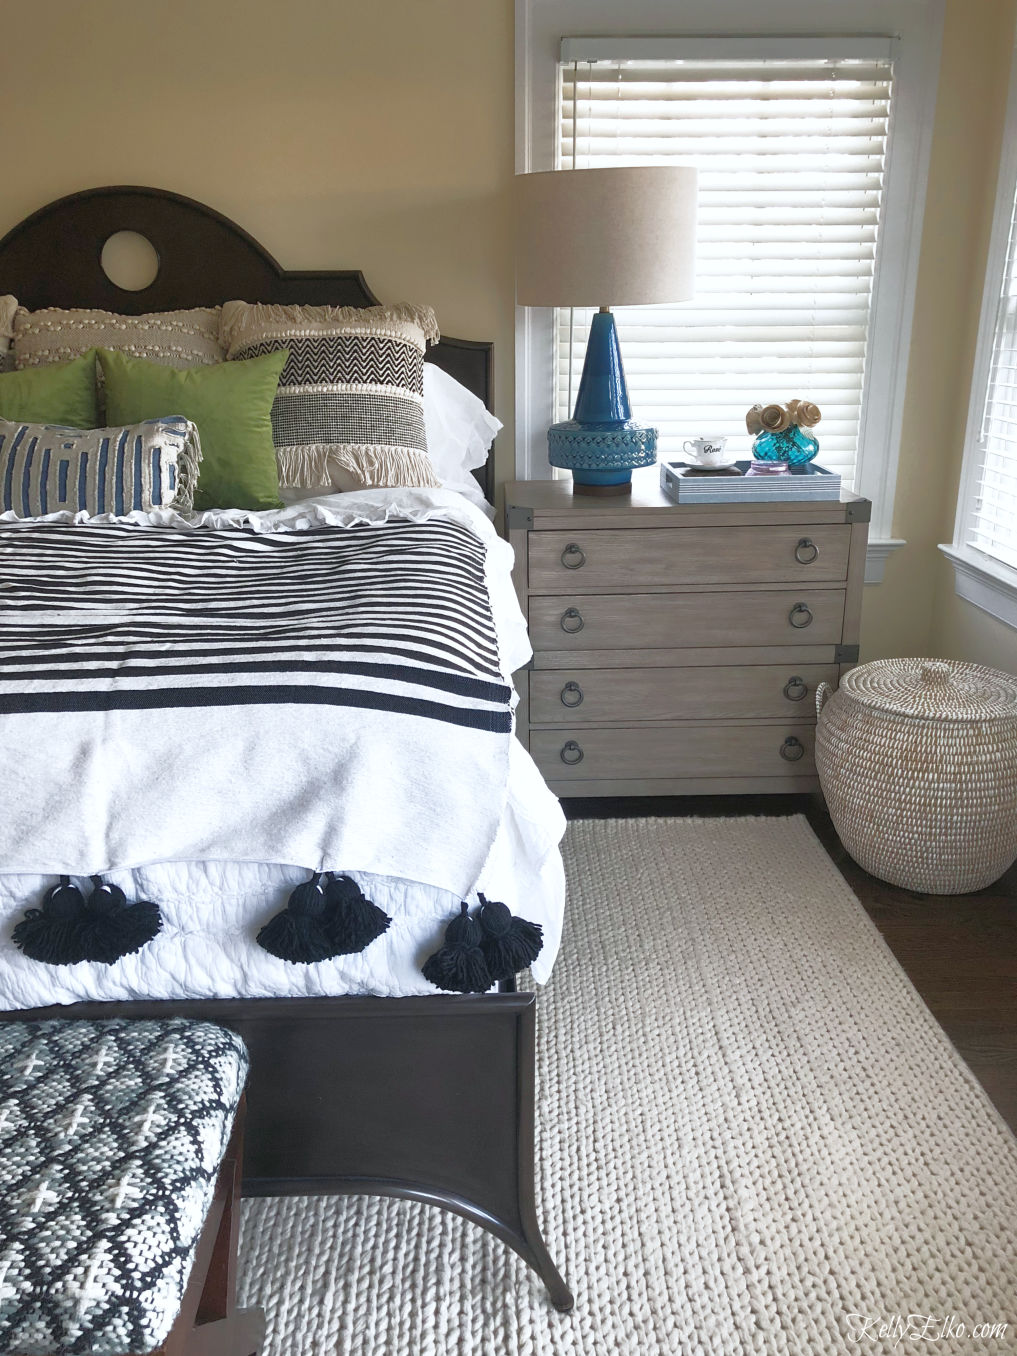 Love this bedroom and the fun tassel blanket and chest of drawers as a nightstand kellyelko.com #bedroom #bedroomdecor #bedding #boho #eclecticdecor #interiordecor #midcentury